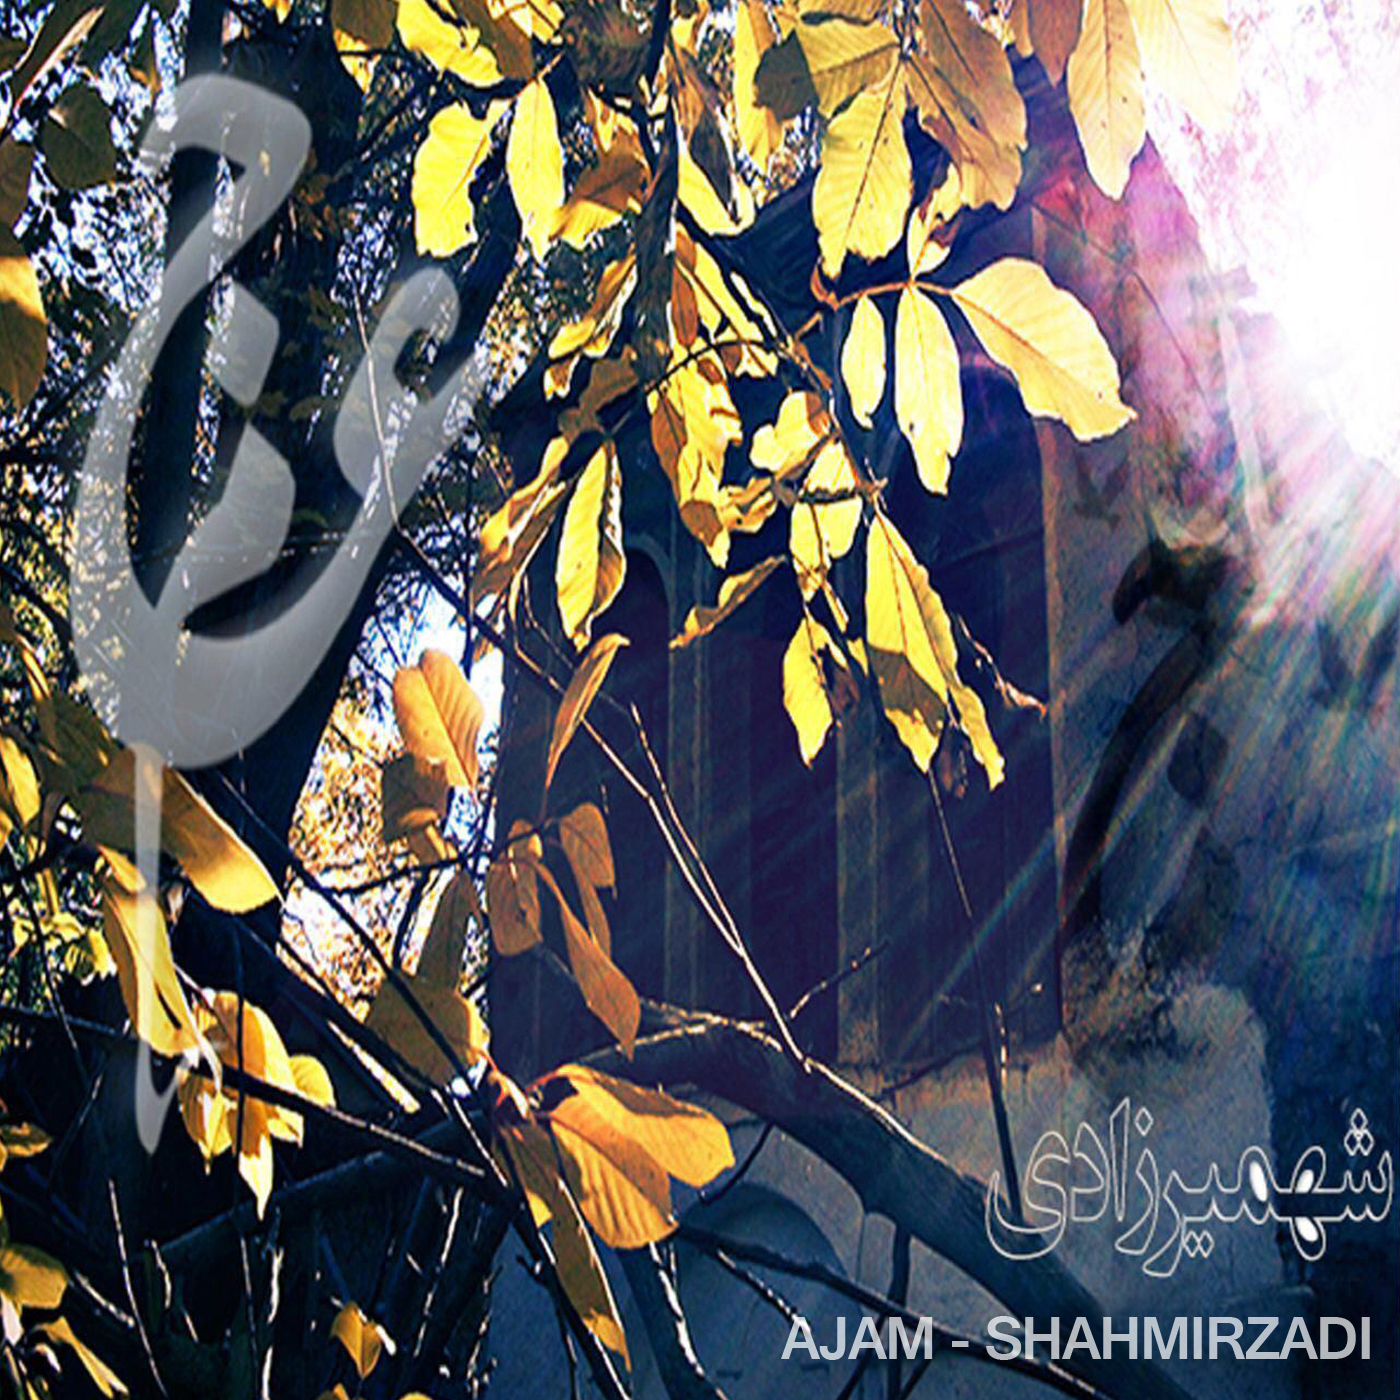 shahmirzadi-artwork-with-english